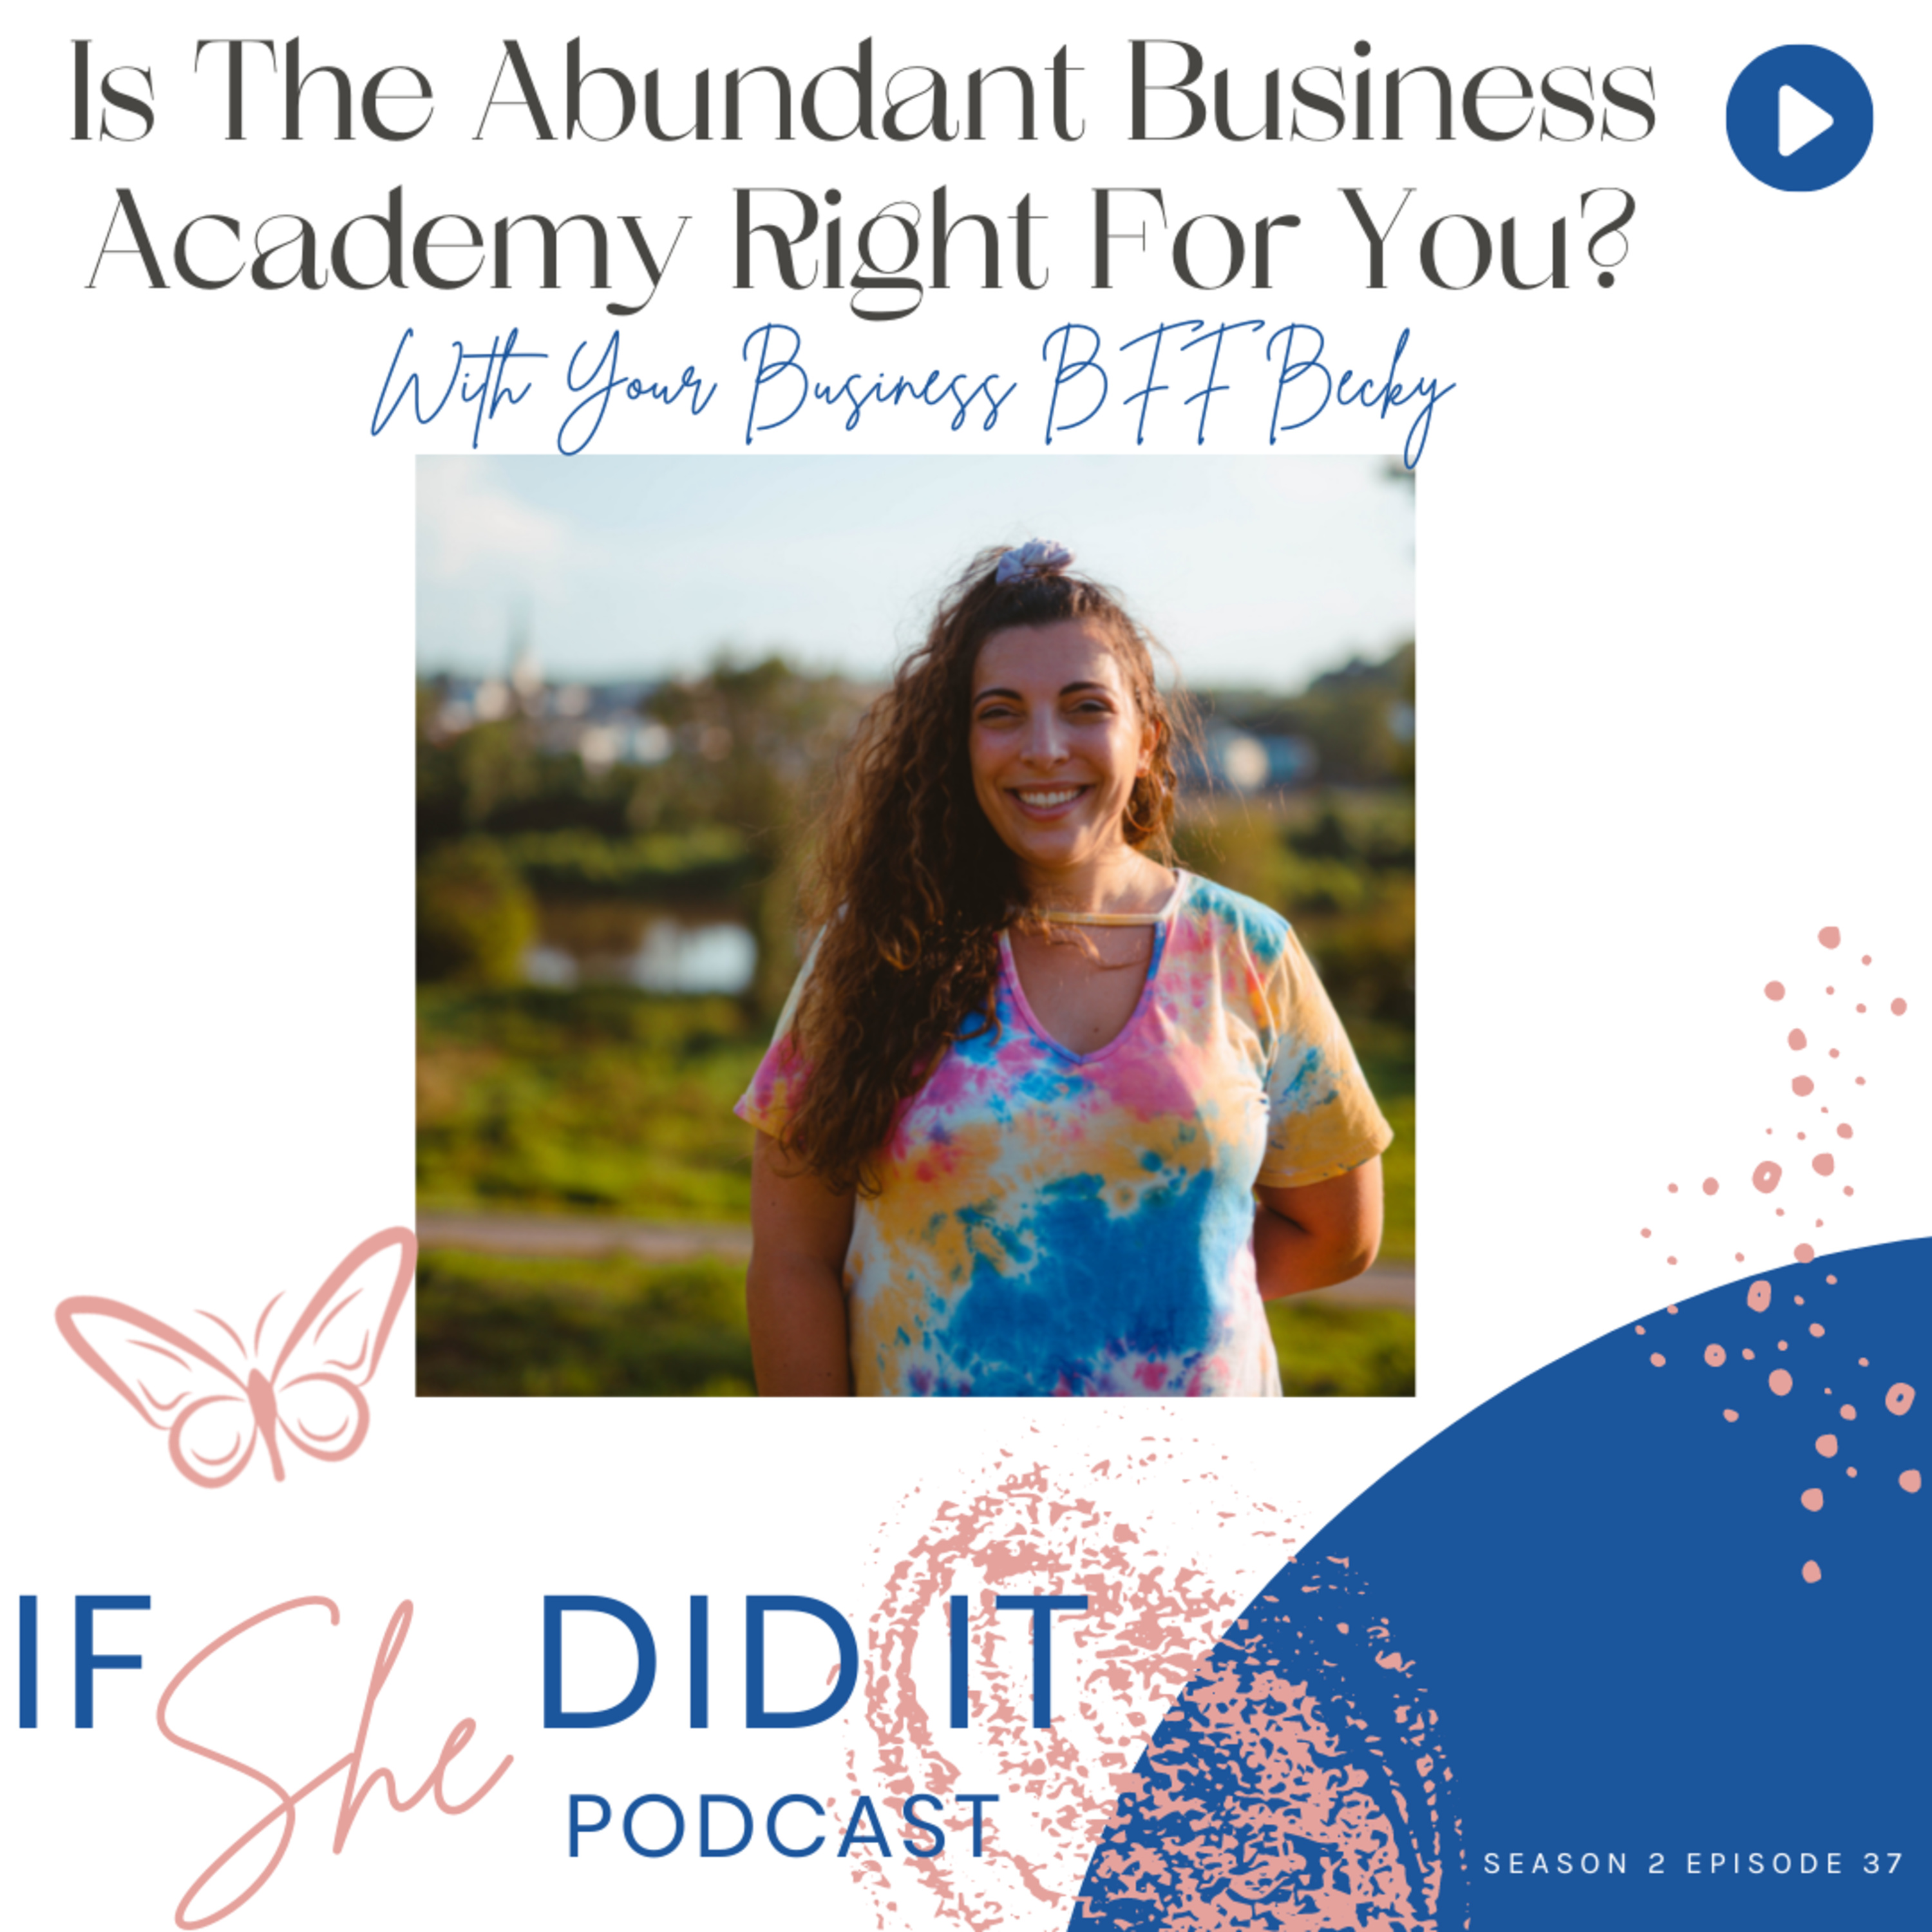 Is The Abundant Business Academy Right For You?